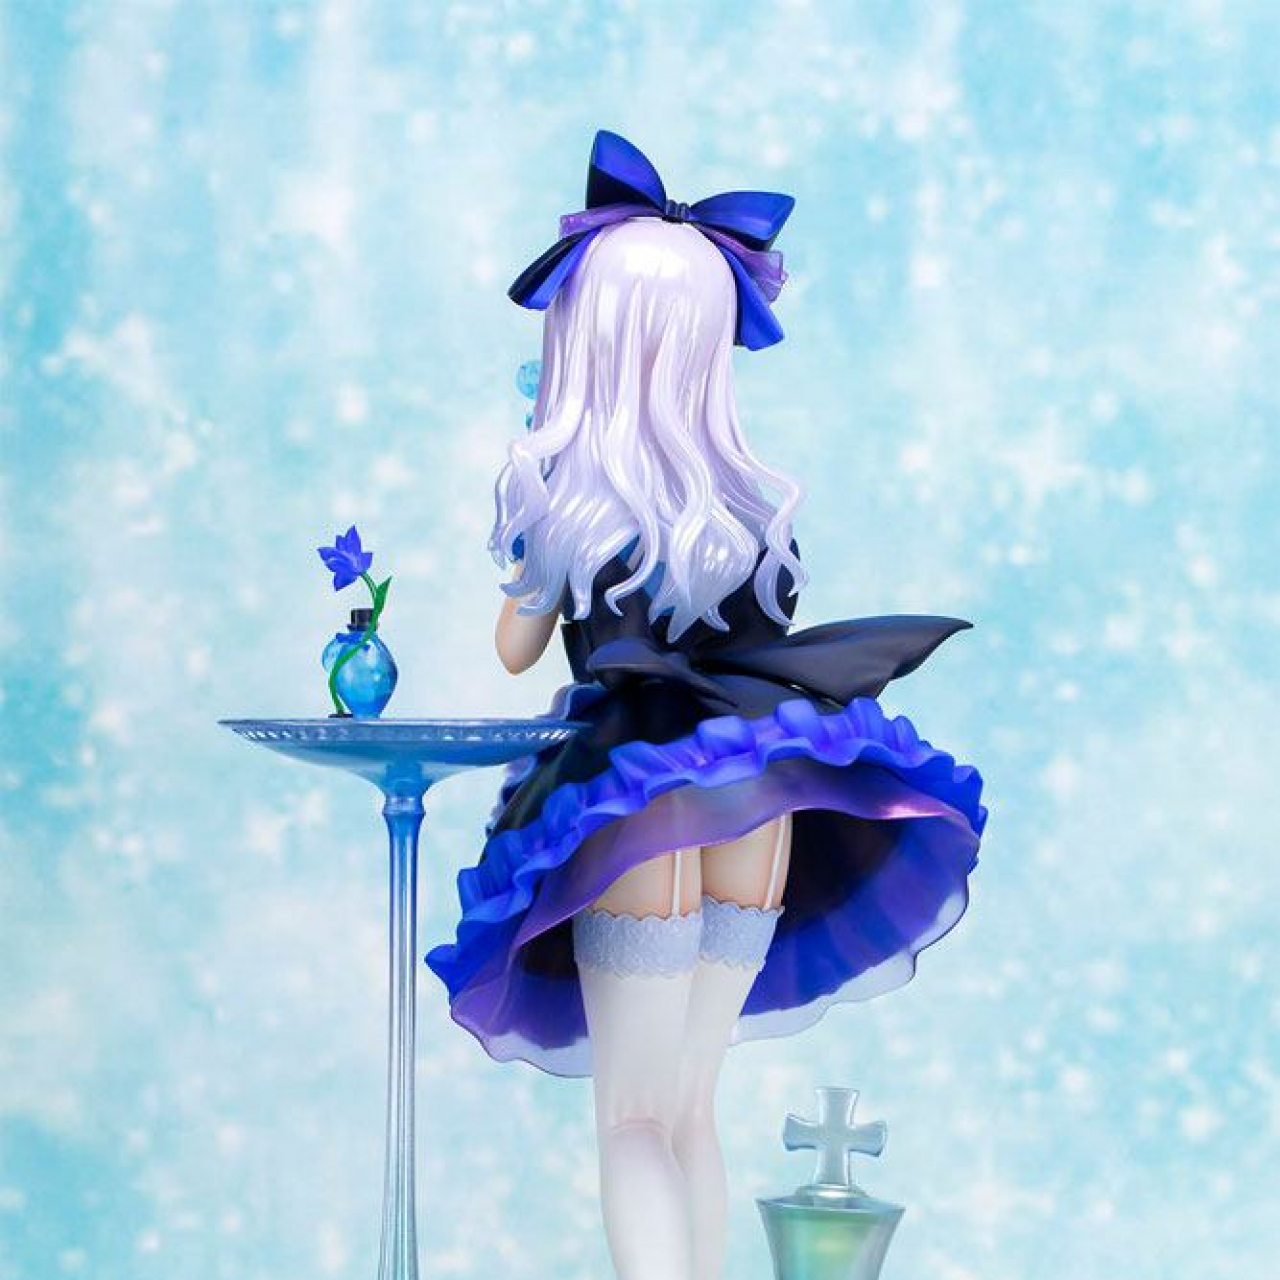 Original Character Statue Blue Alice Illustration by Fuji Choko 25 cm